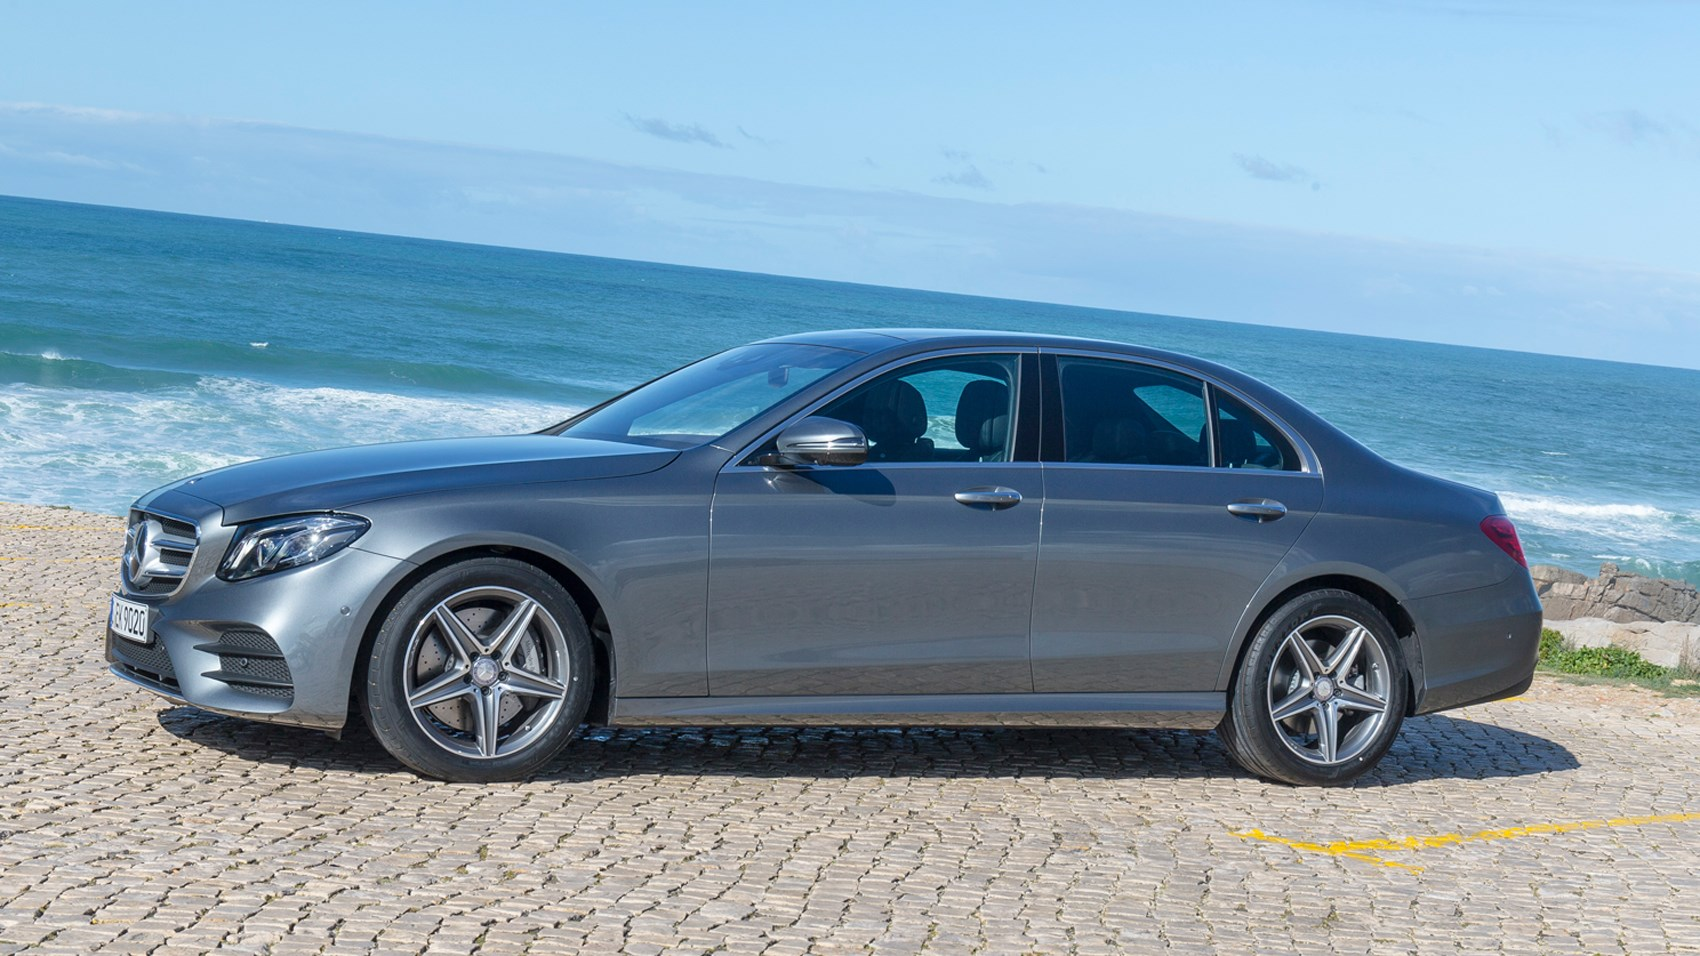 Mercedes-Benz E-Class Cars for Sale